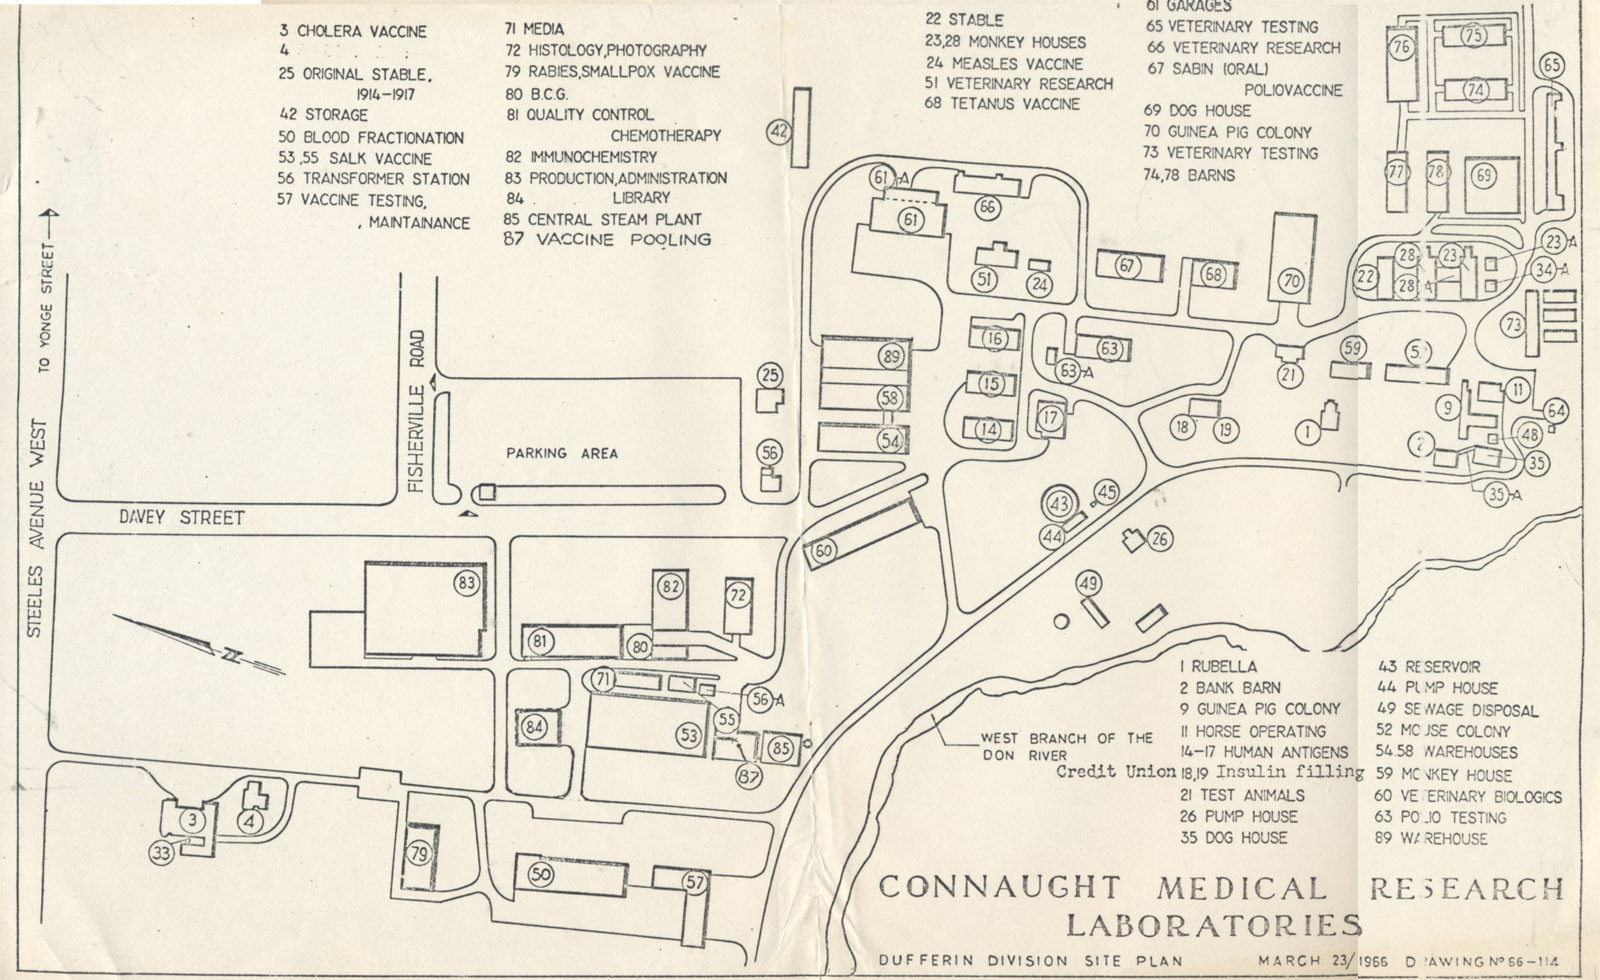 Site Plan, Connaught Medical Research Laboratories, Dufferin Division, March 1966.